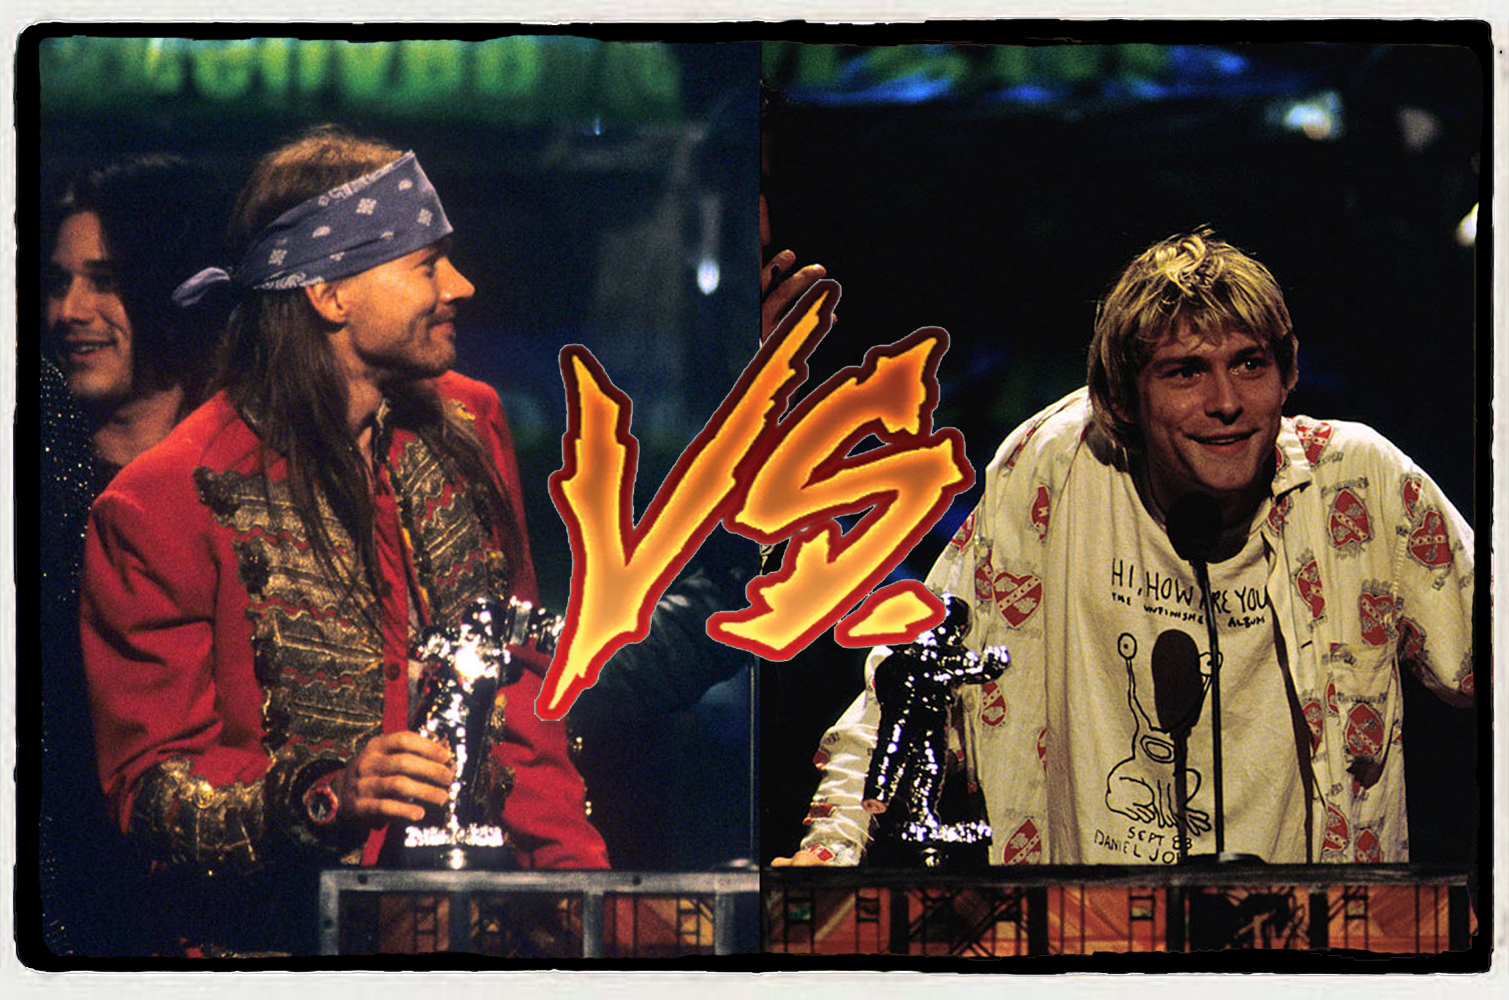 Kurt Cobain vs Axl Rose